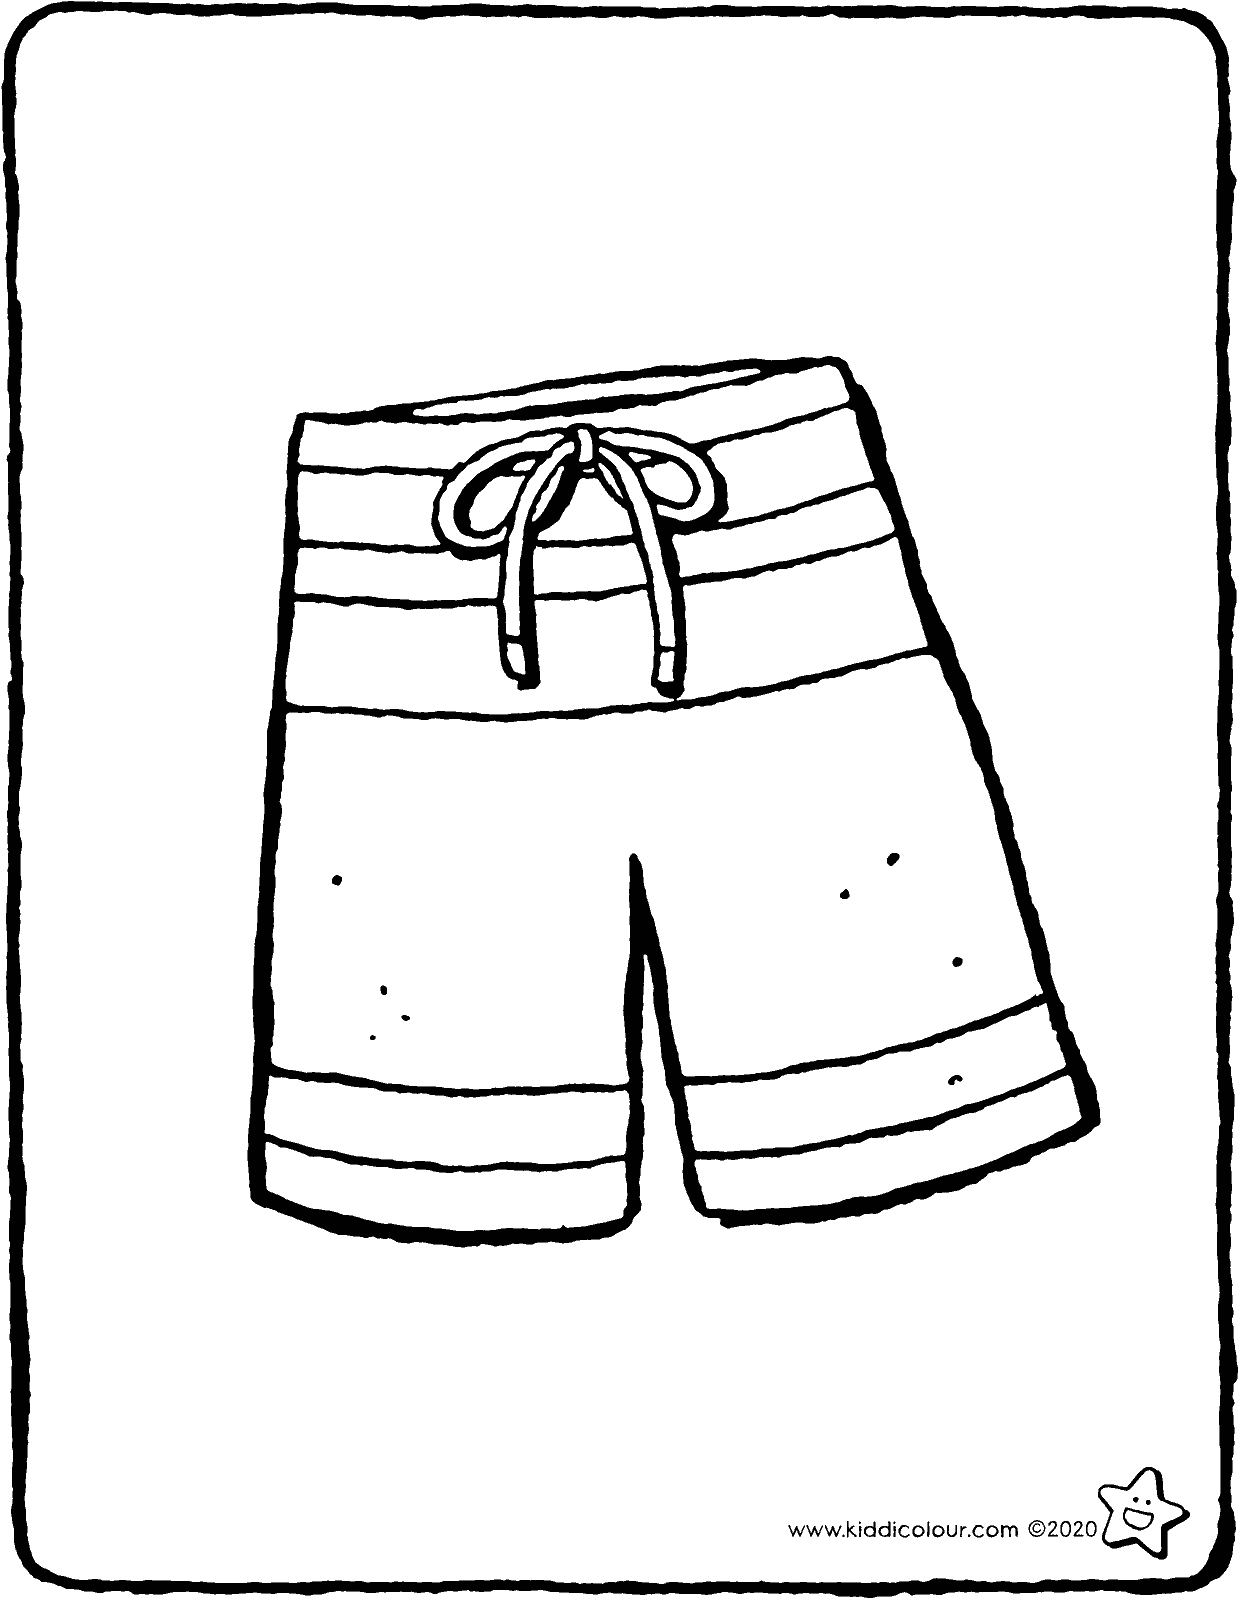 swimming shorts colouring page drawing picture 01V